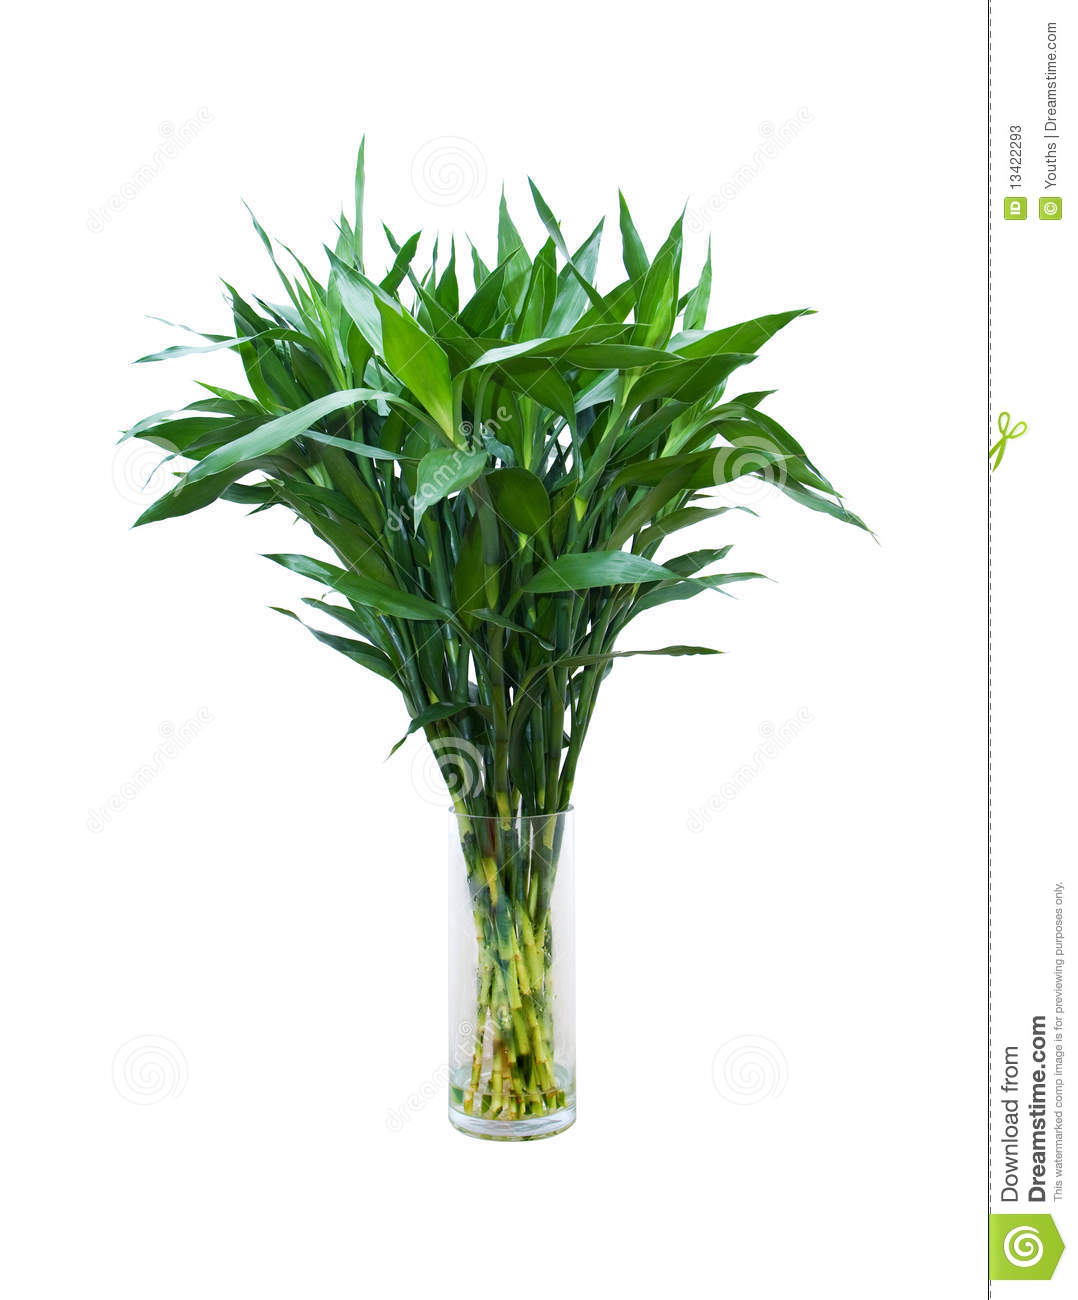 Green Bamboo In A Glass Vase Isolated On White Background Stock Image Image 13422293